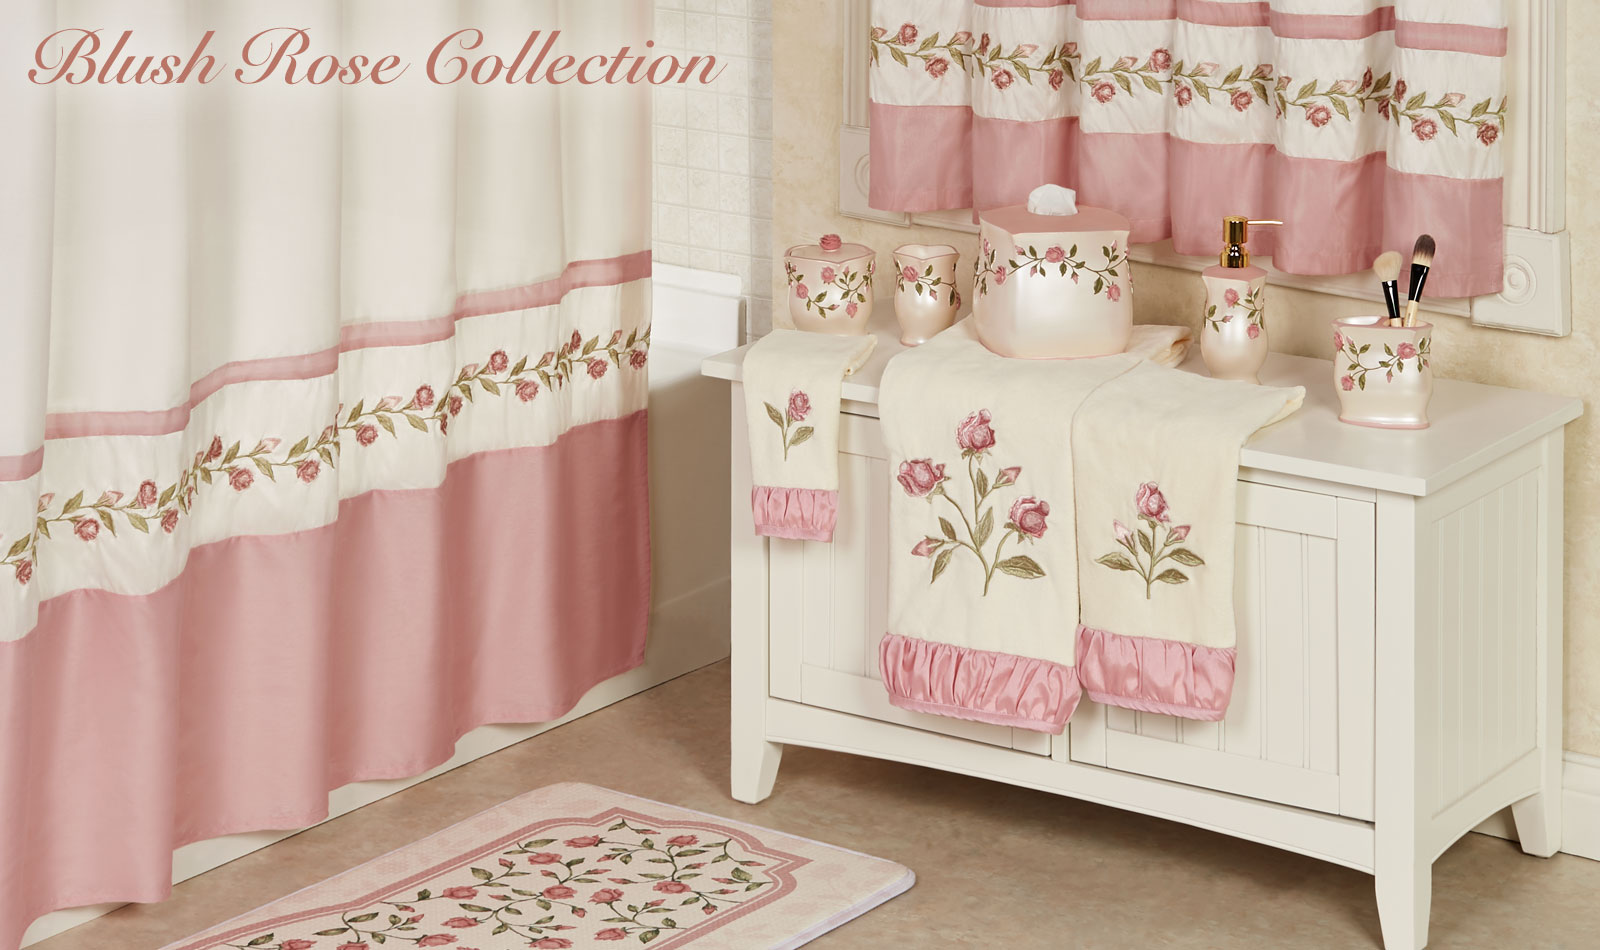 Blush Rose Bath Collection